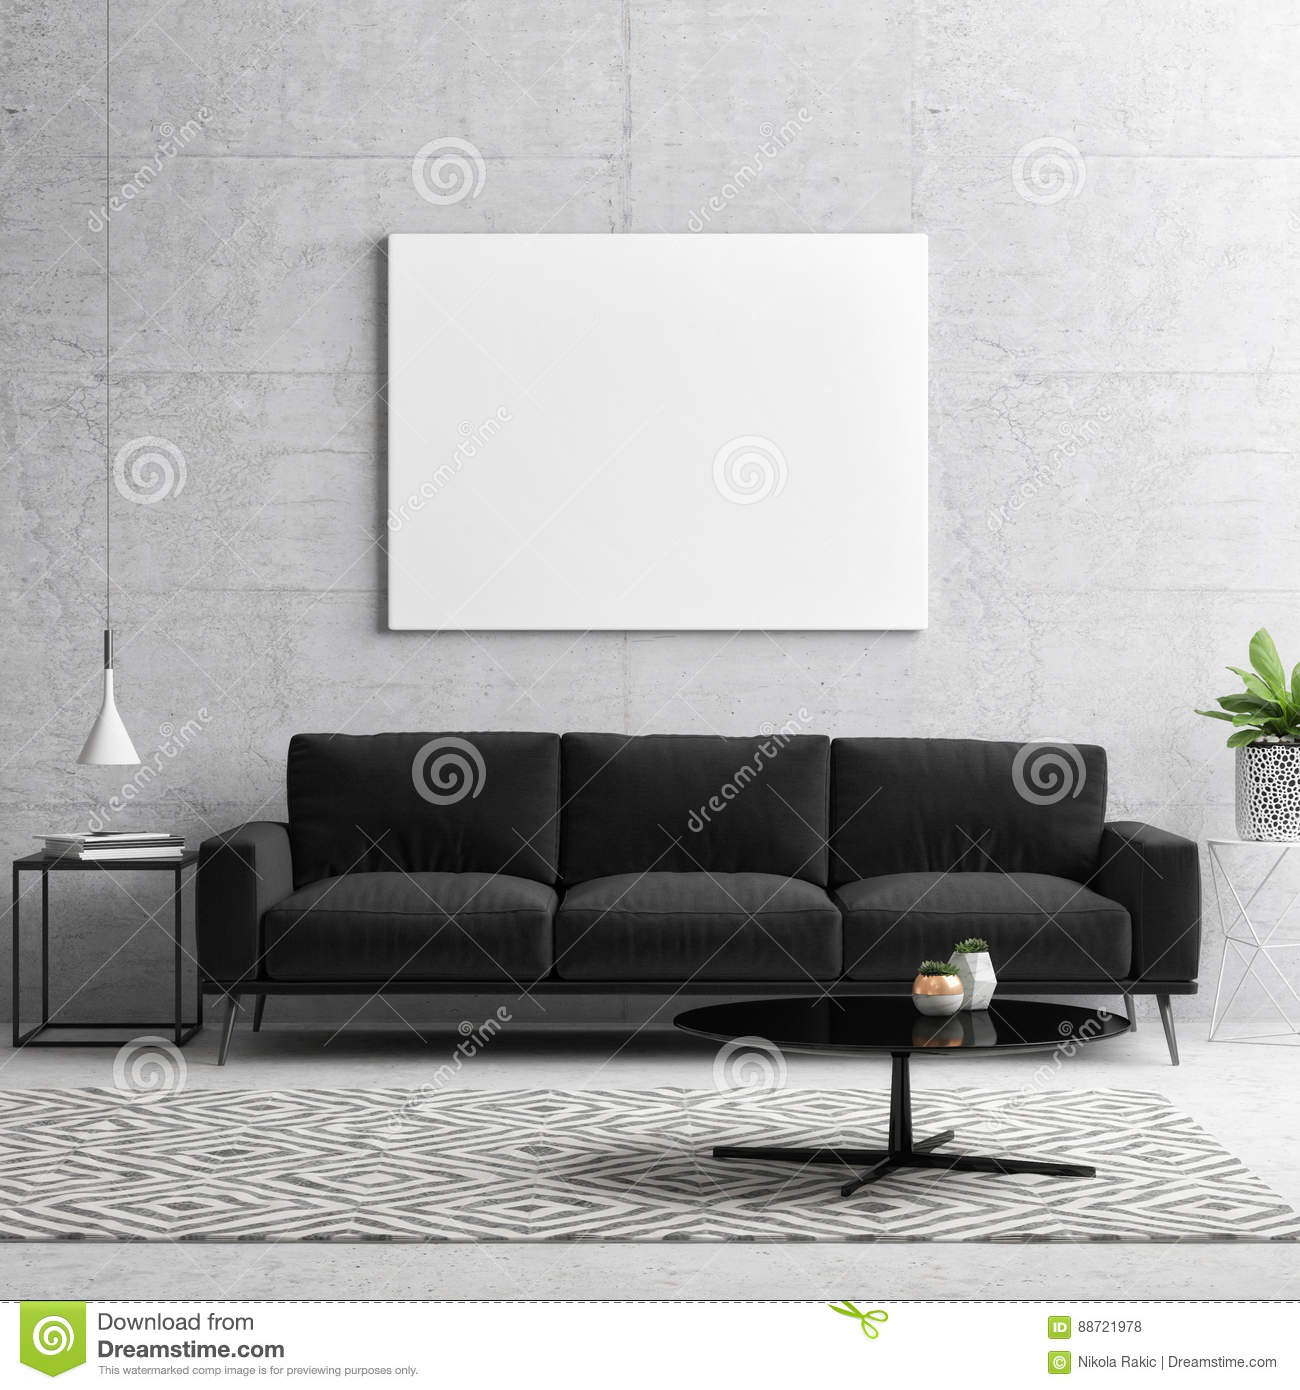 Mock Up Poster, Black And White Concept Living Room Stock ...